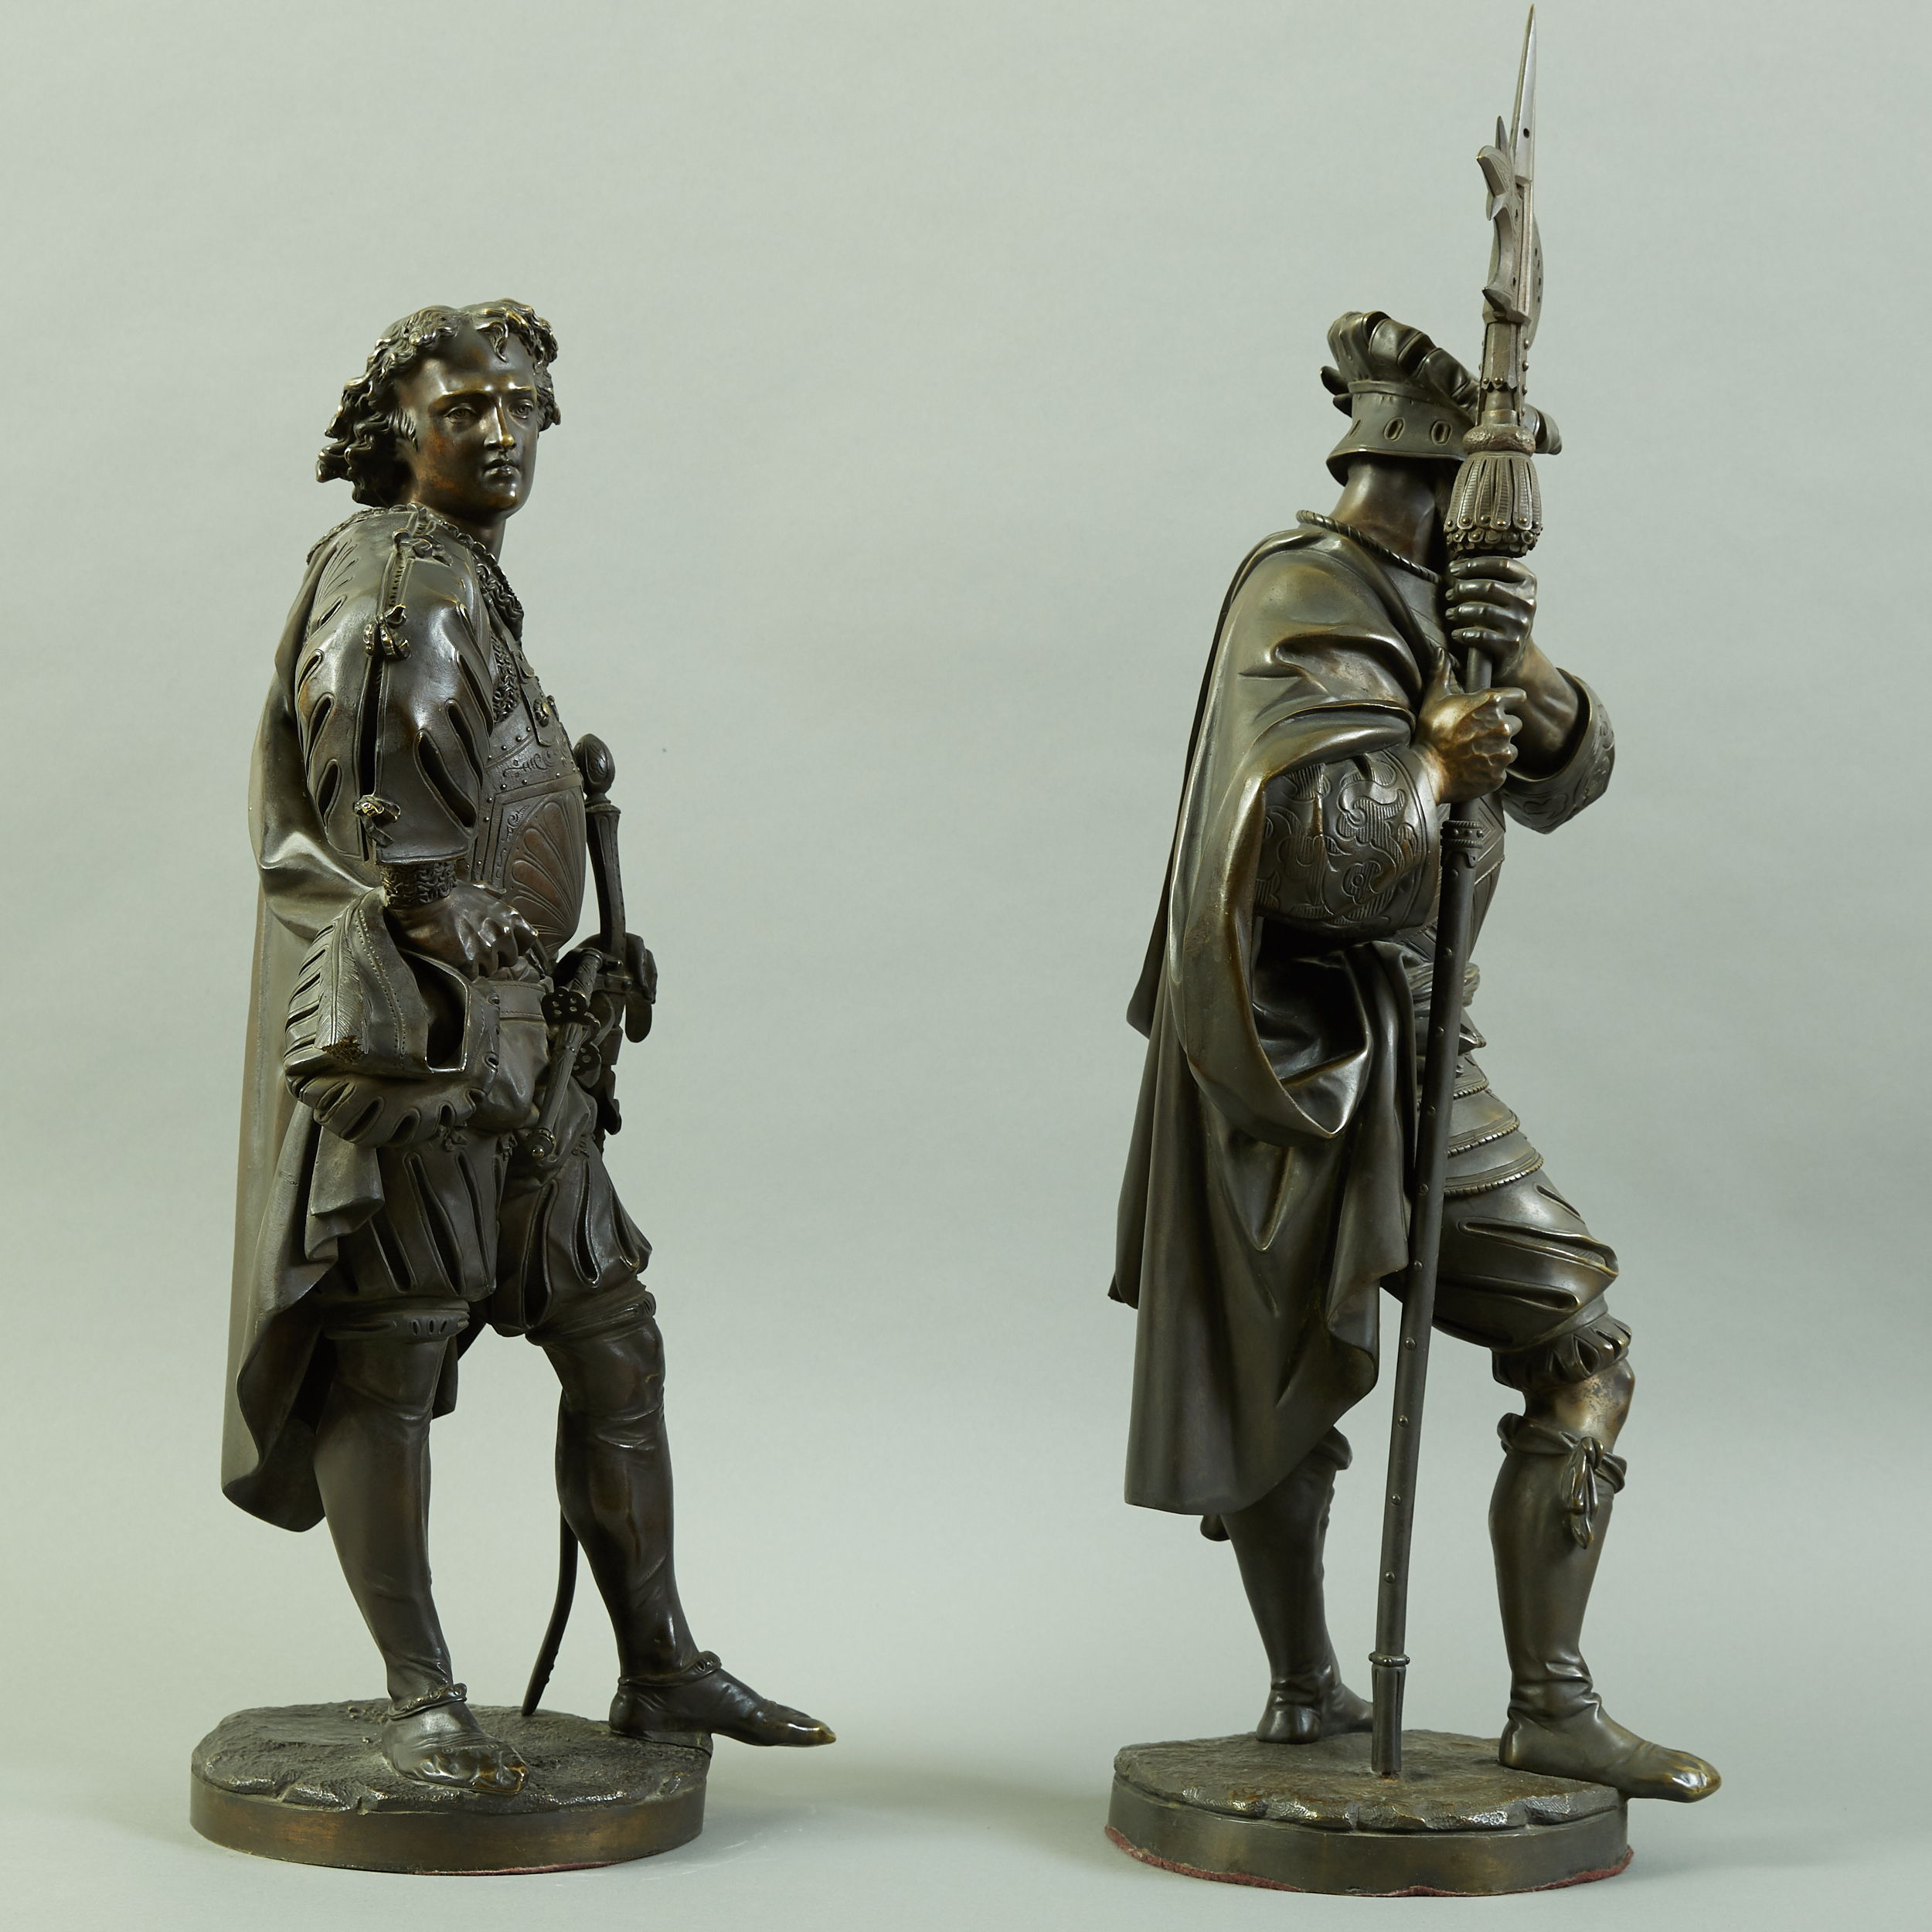 Lot 80 - Pair of Large Auguste Carrier Bronze Sculptures